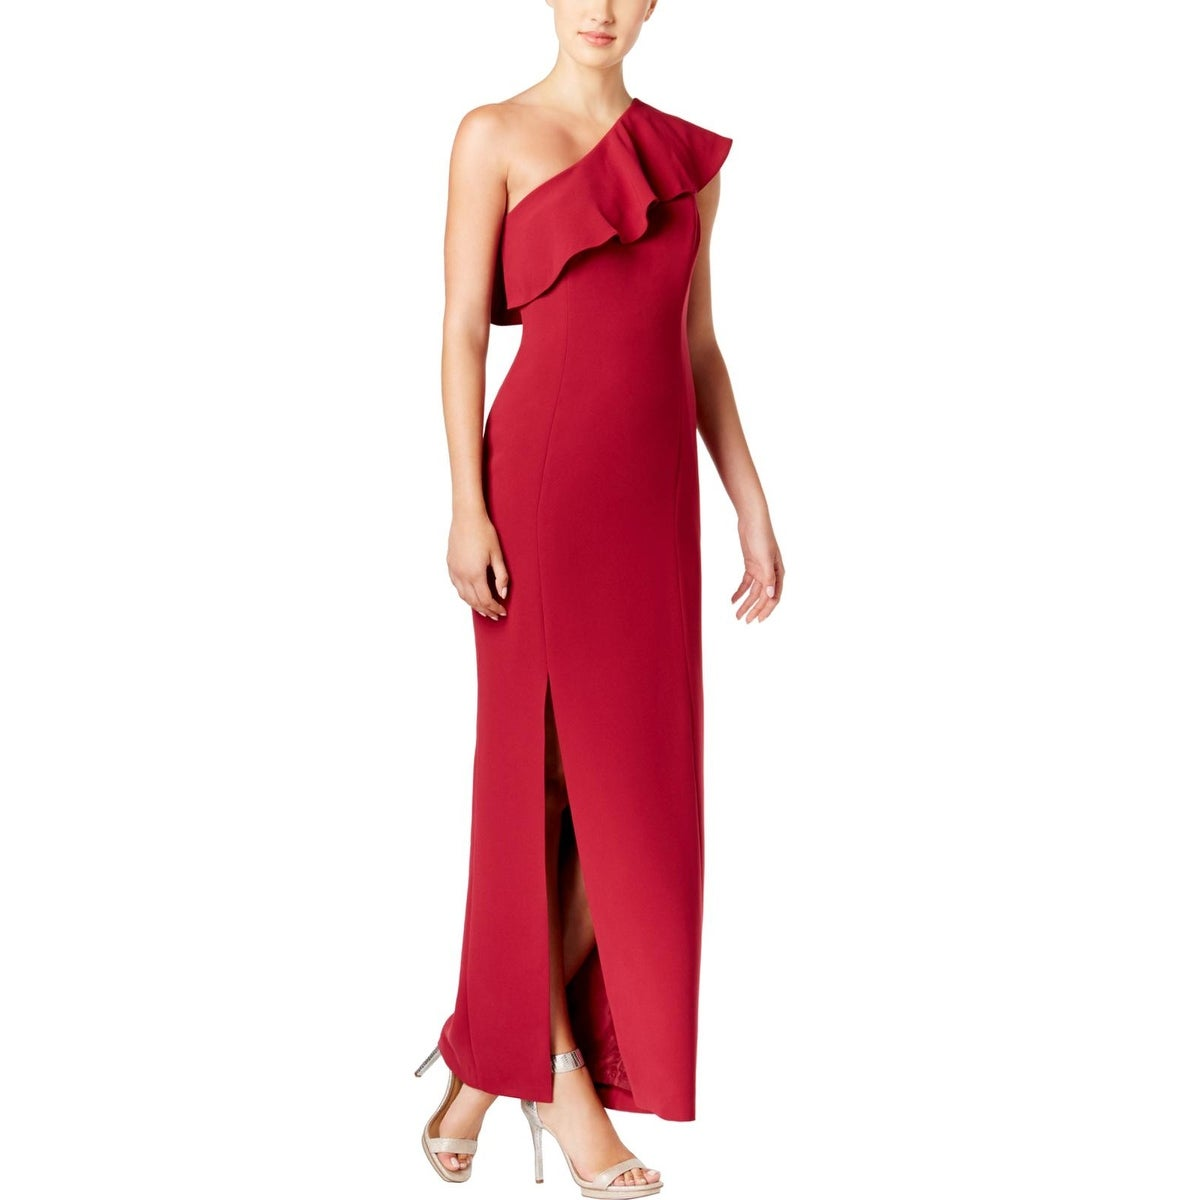 636492af390 Calvin Klein Dresses | Find Great Women's Clothing Deals Shopping at  Overstock